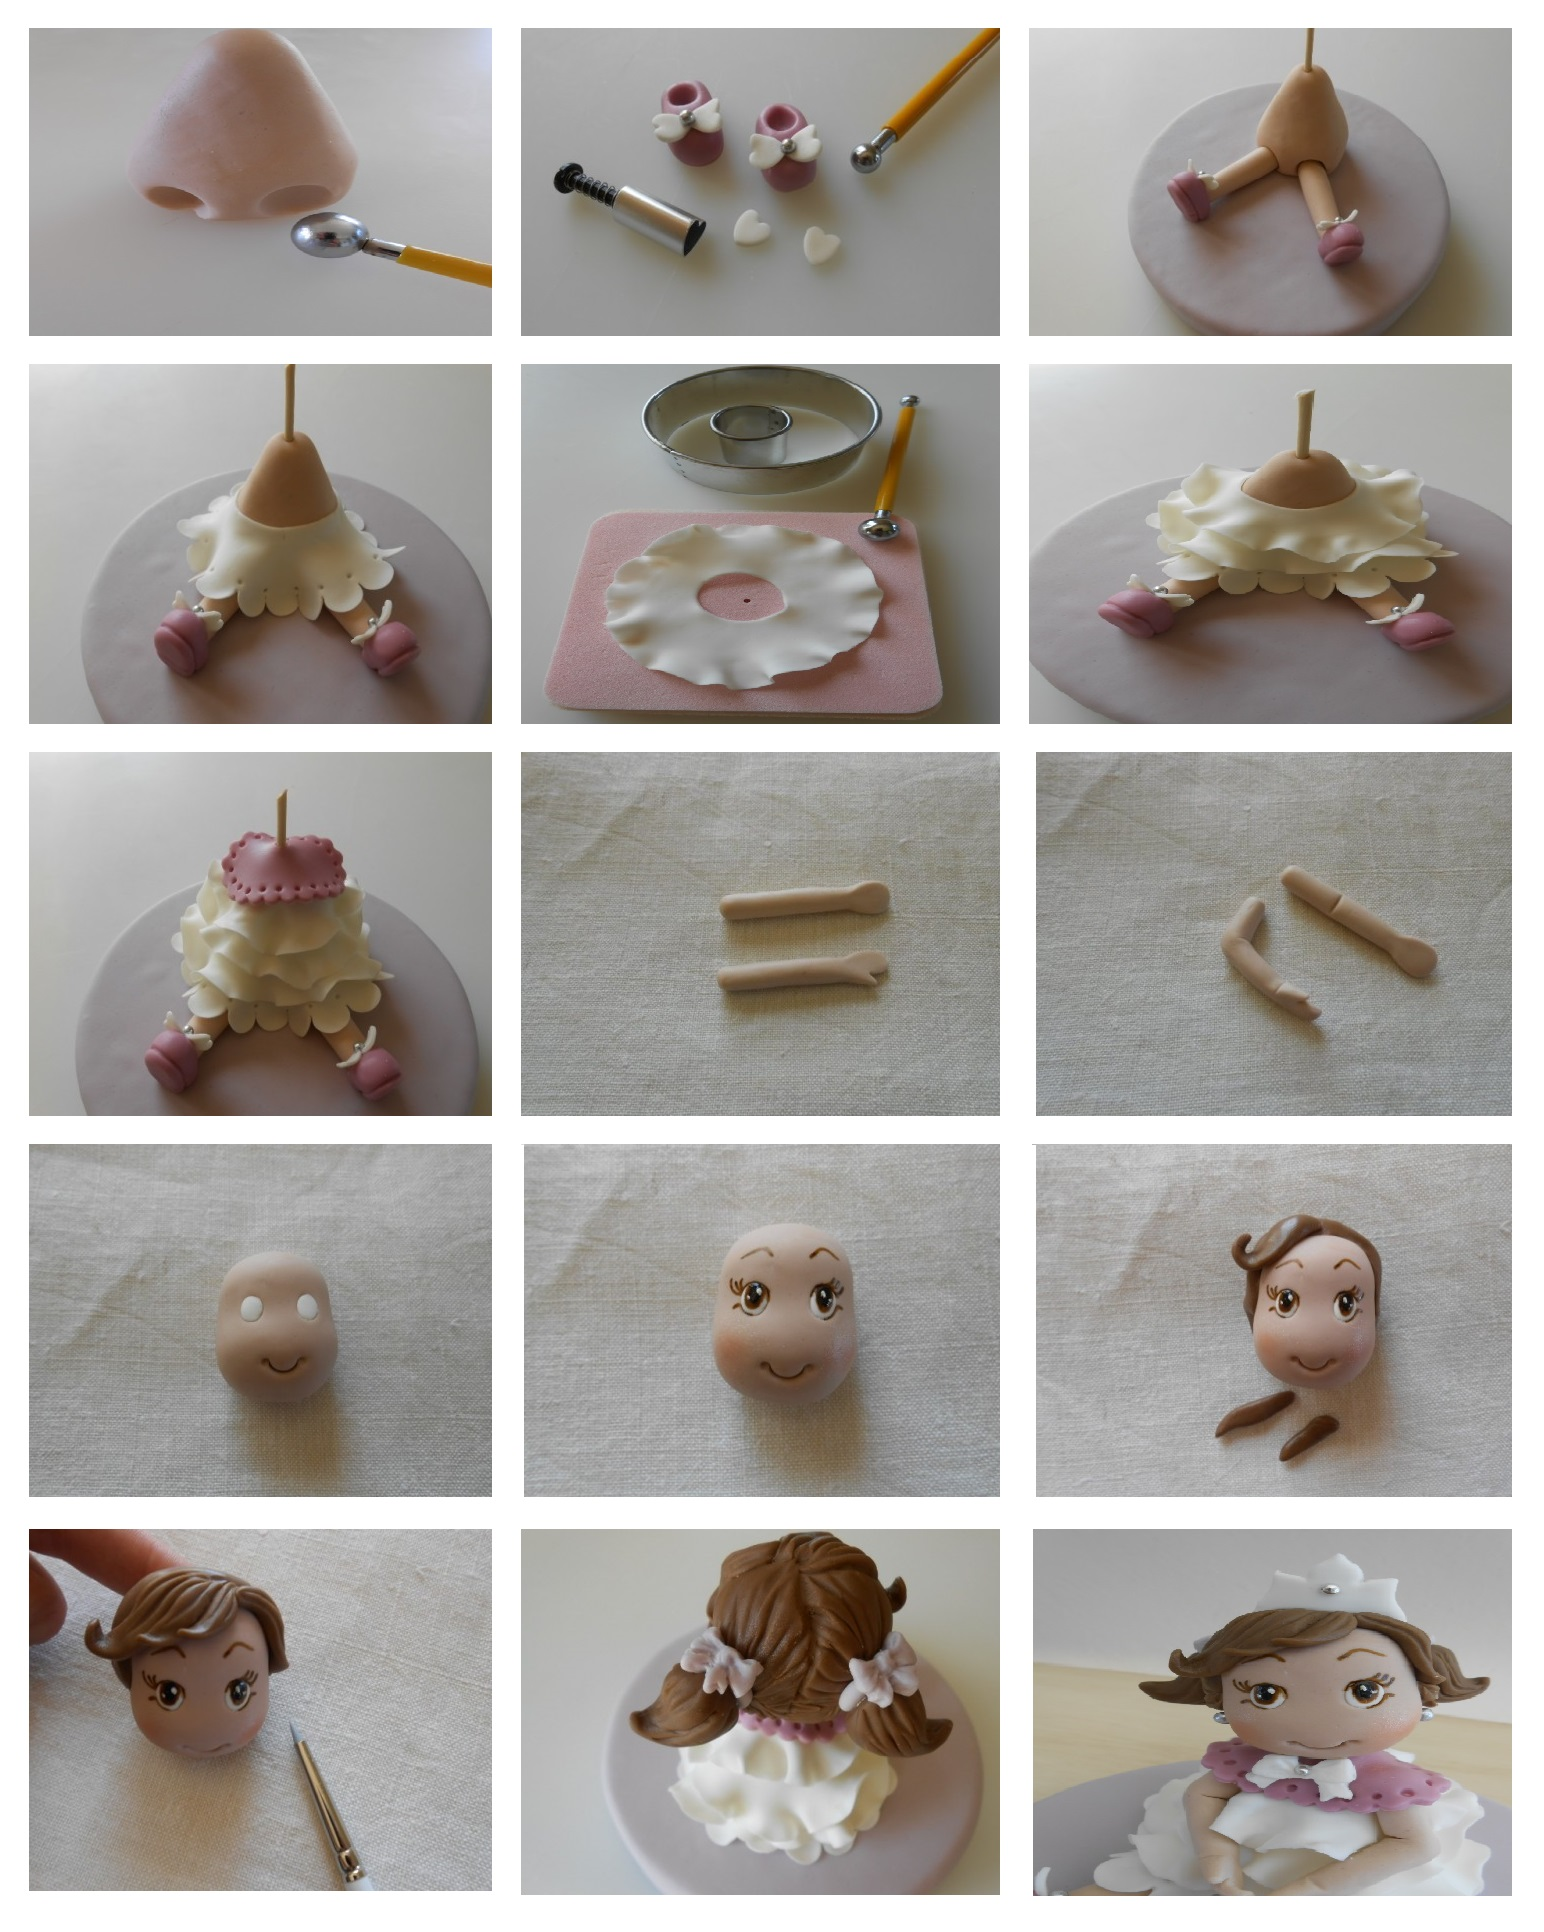 Polymer clay princess - DIY step by step tutorial